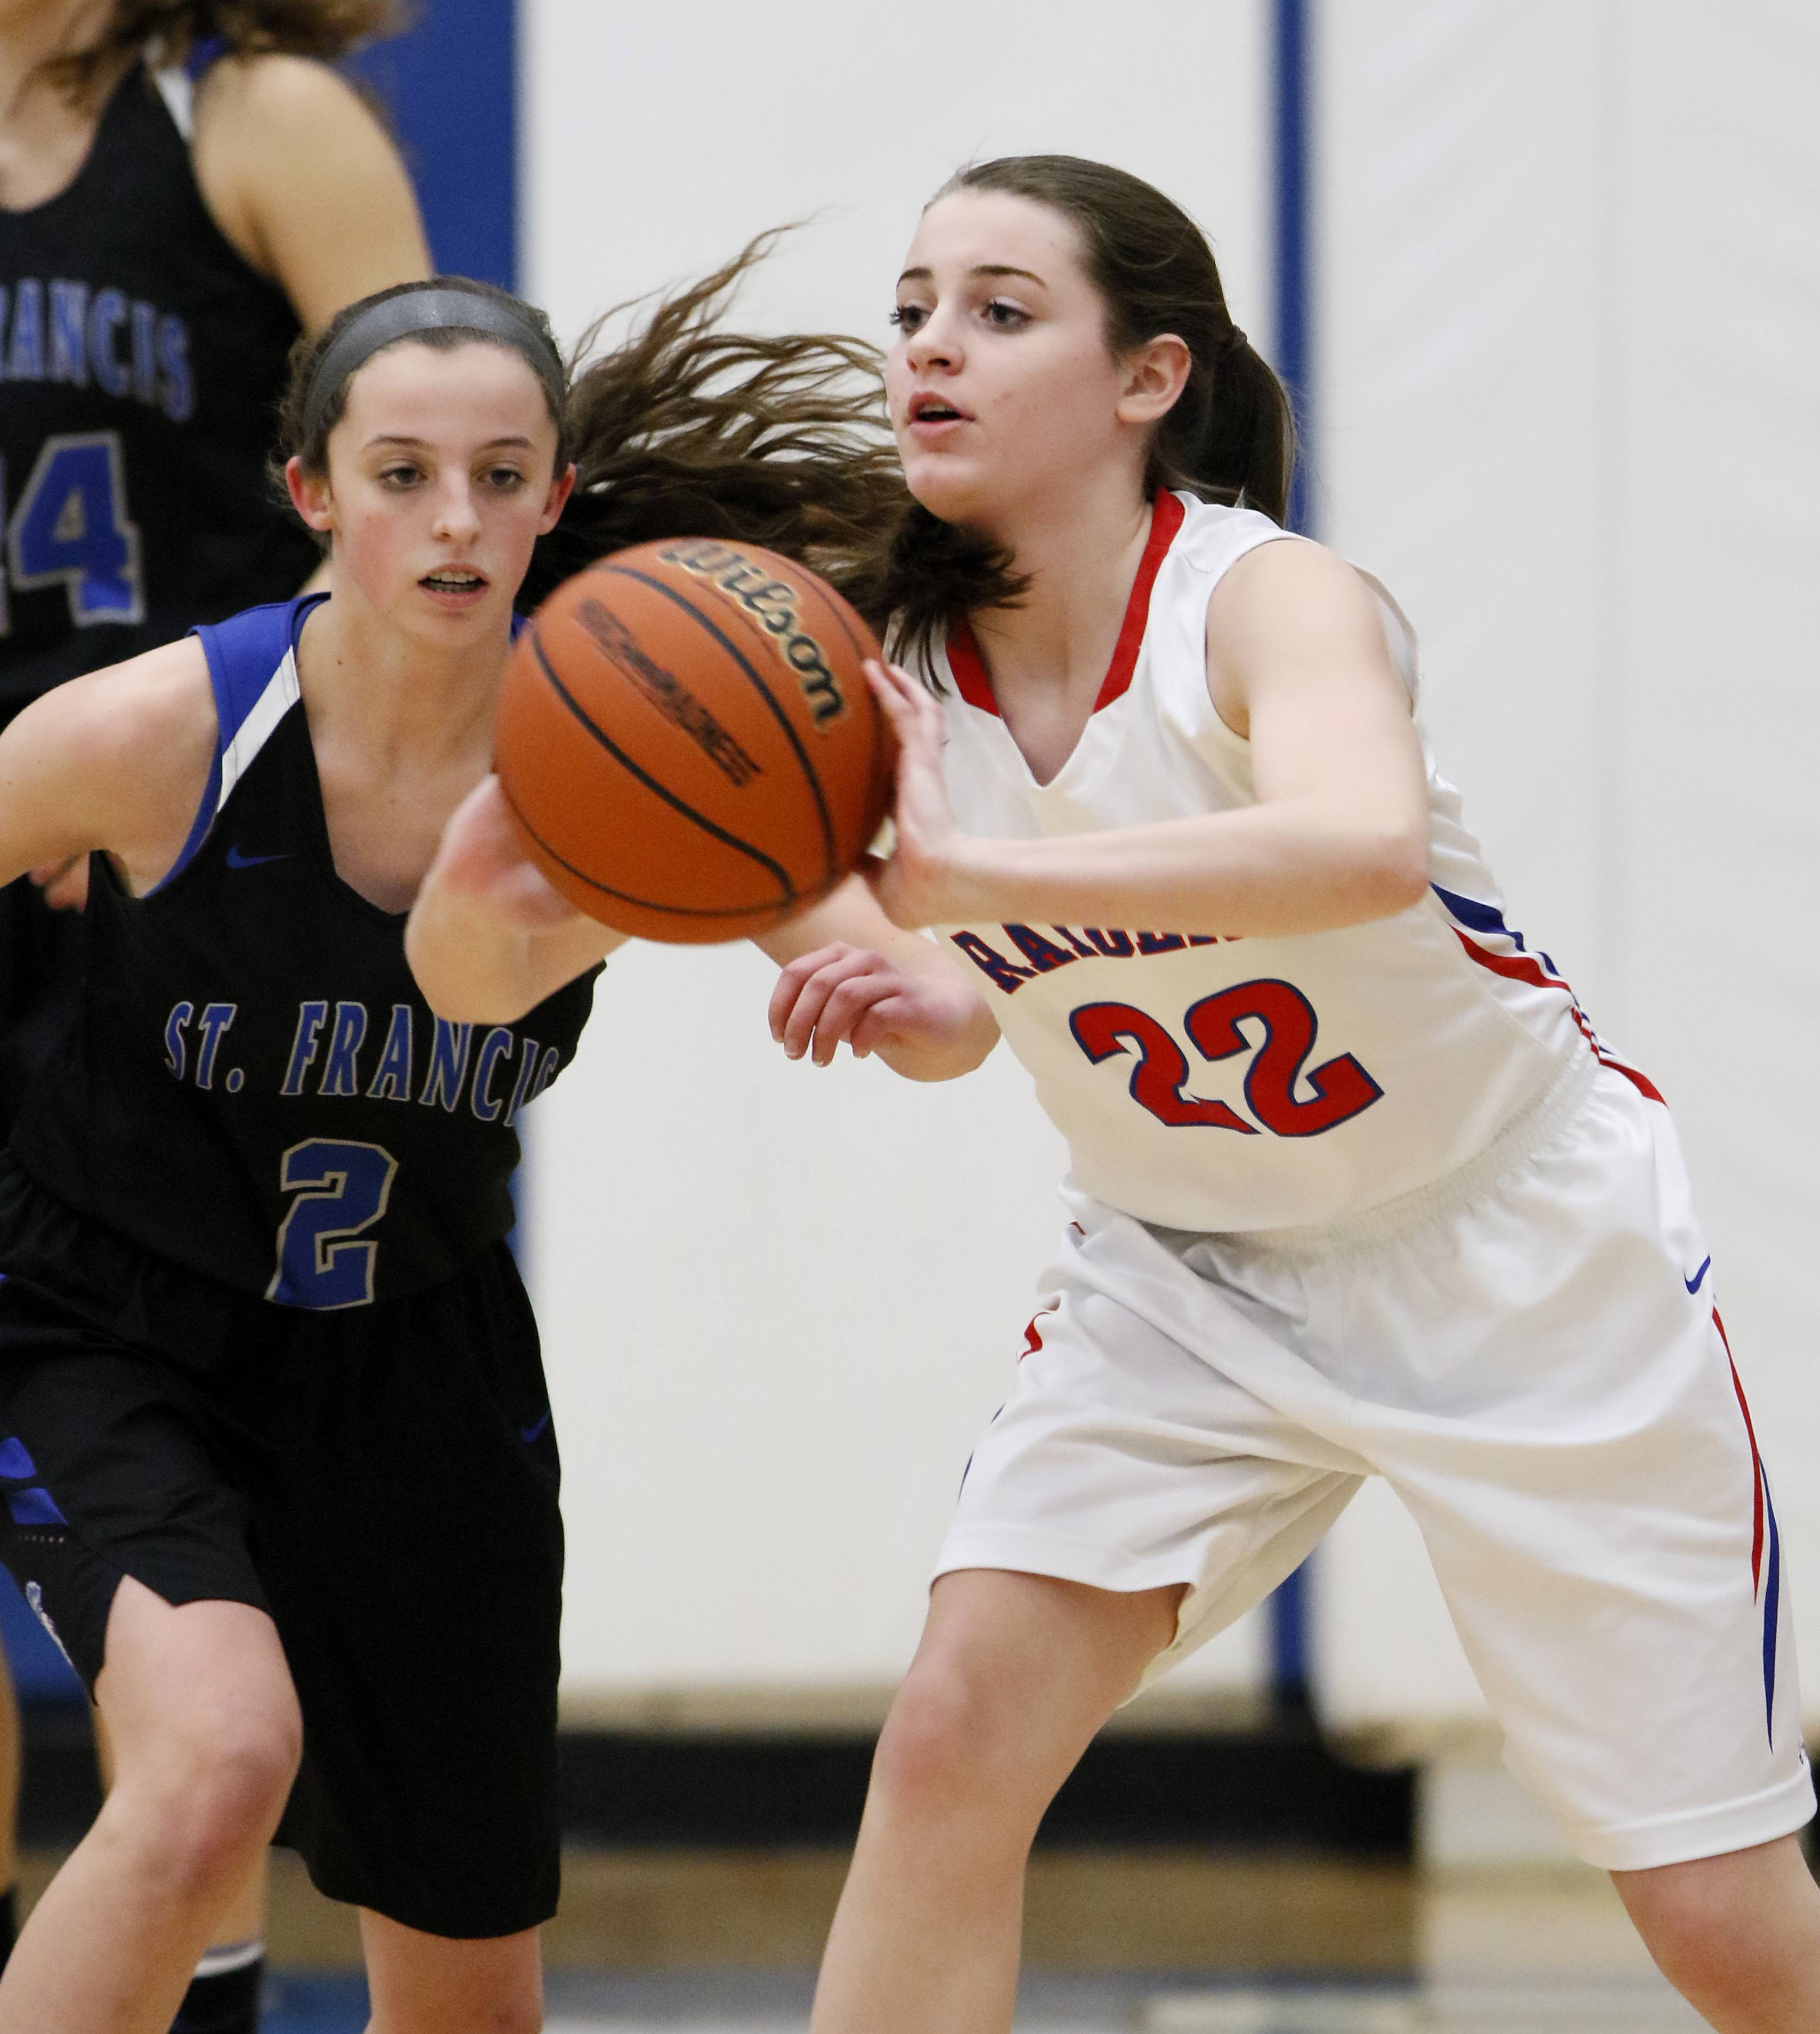 Glenbard South's Raquel LaPonte (22) passes the ball around St. Francis' Shannon Cooney (2).